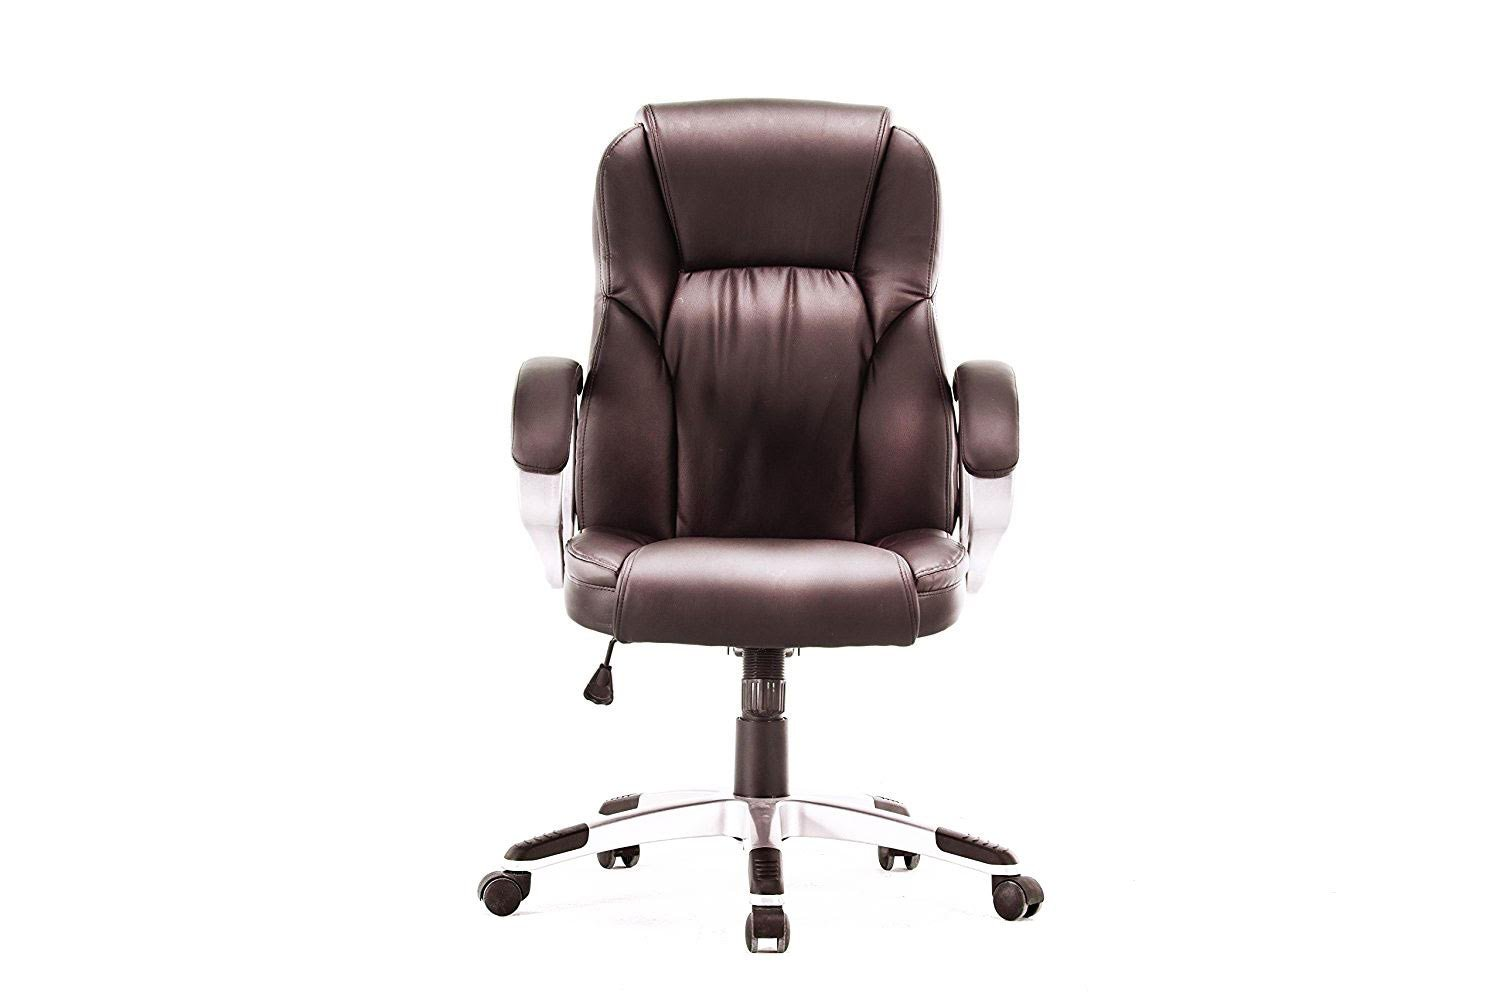 Angel High-Back Manager Executive Deluxe Leather Chair with Arms, Swivel & Tilt, Ergonomic Design, Great for Home Office Task Computer PC Chair (Black) Angel Canada